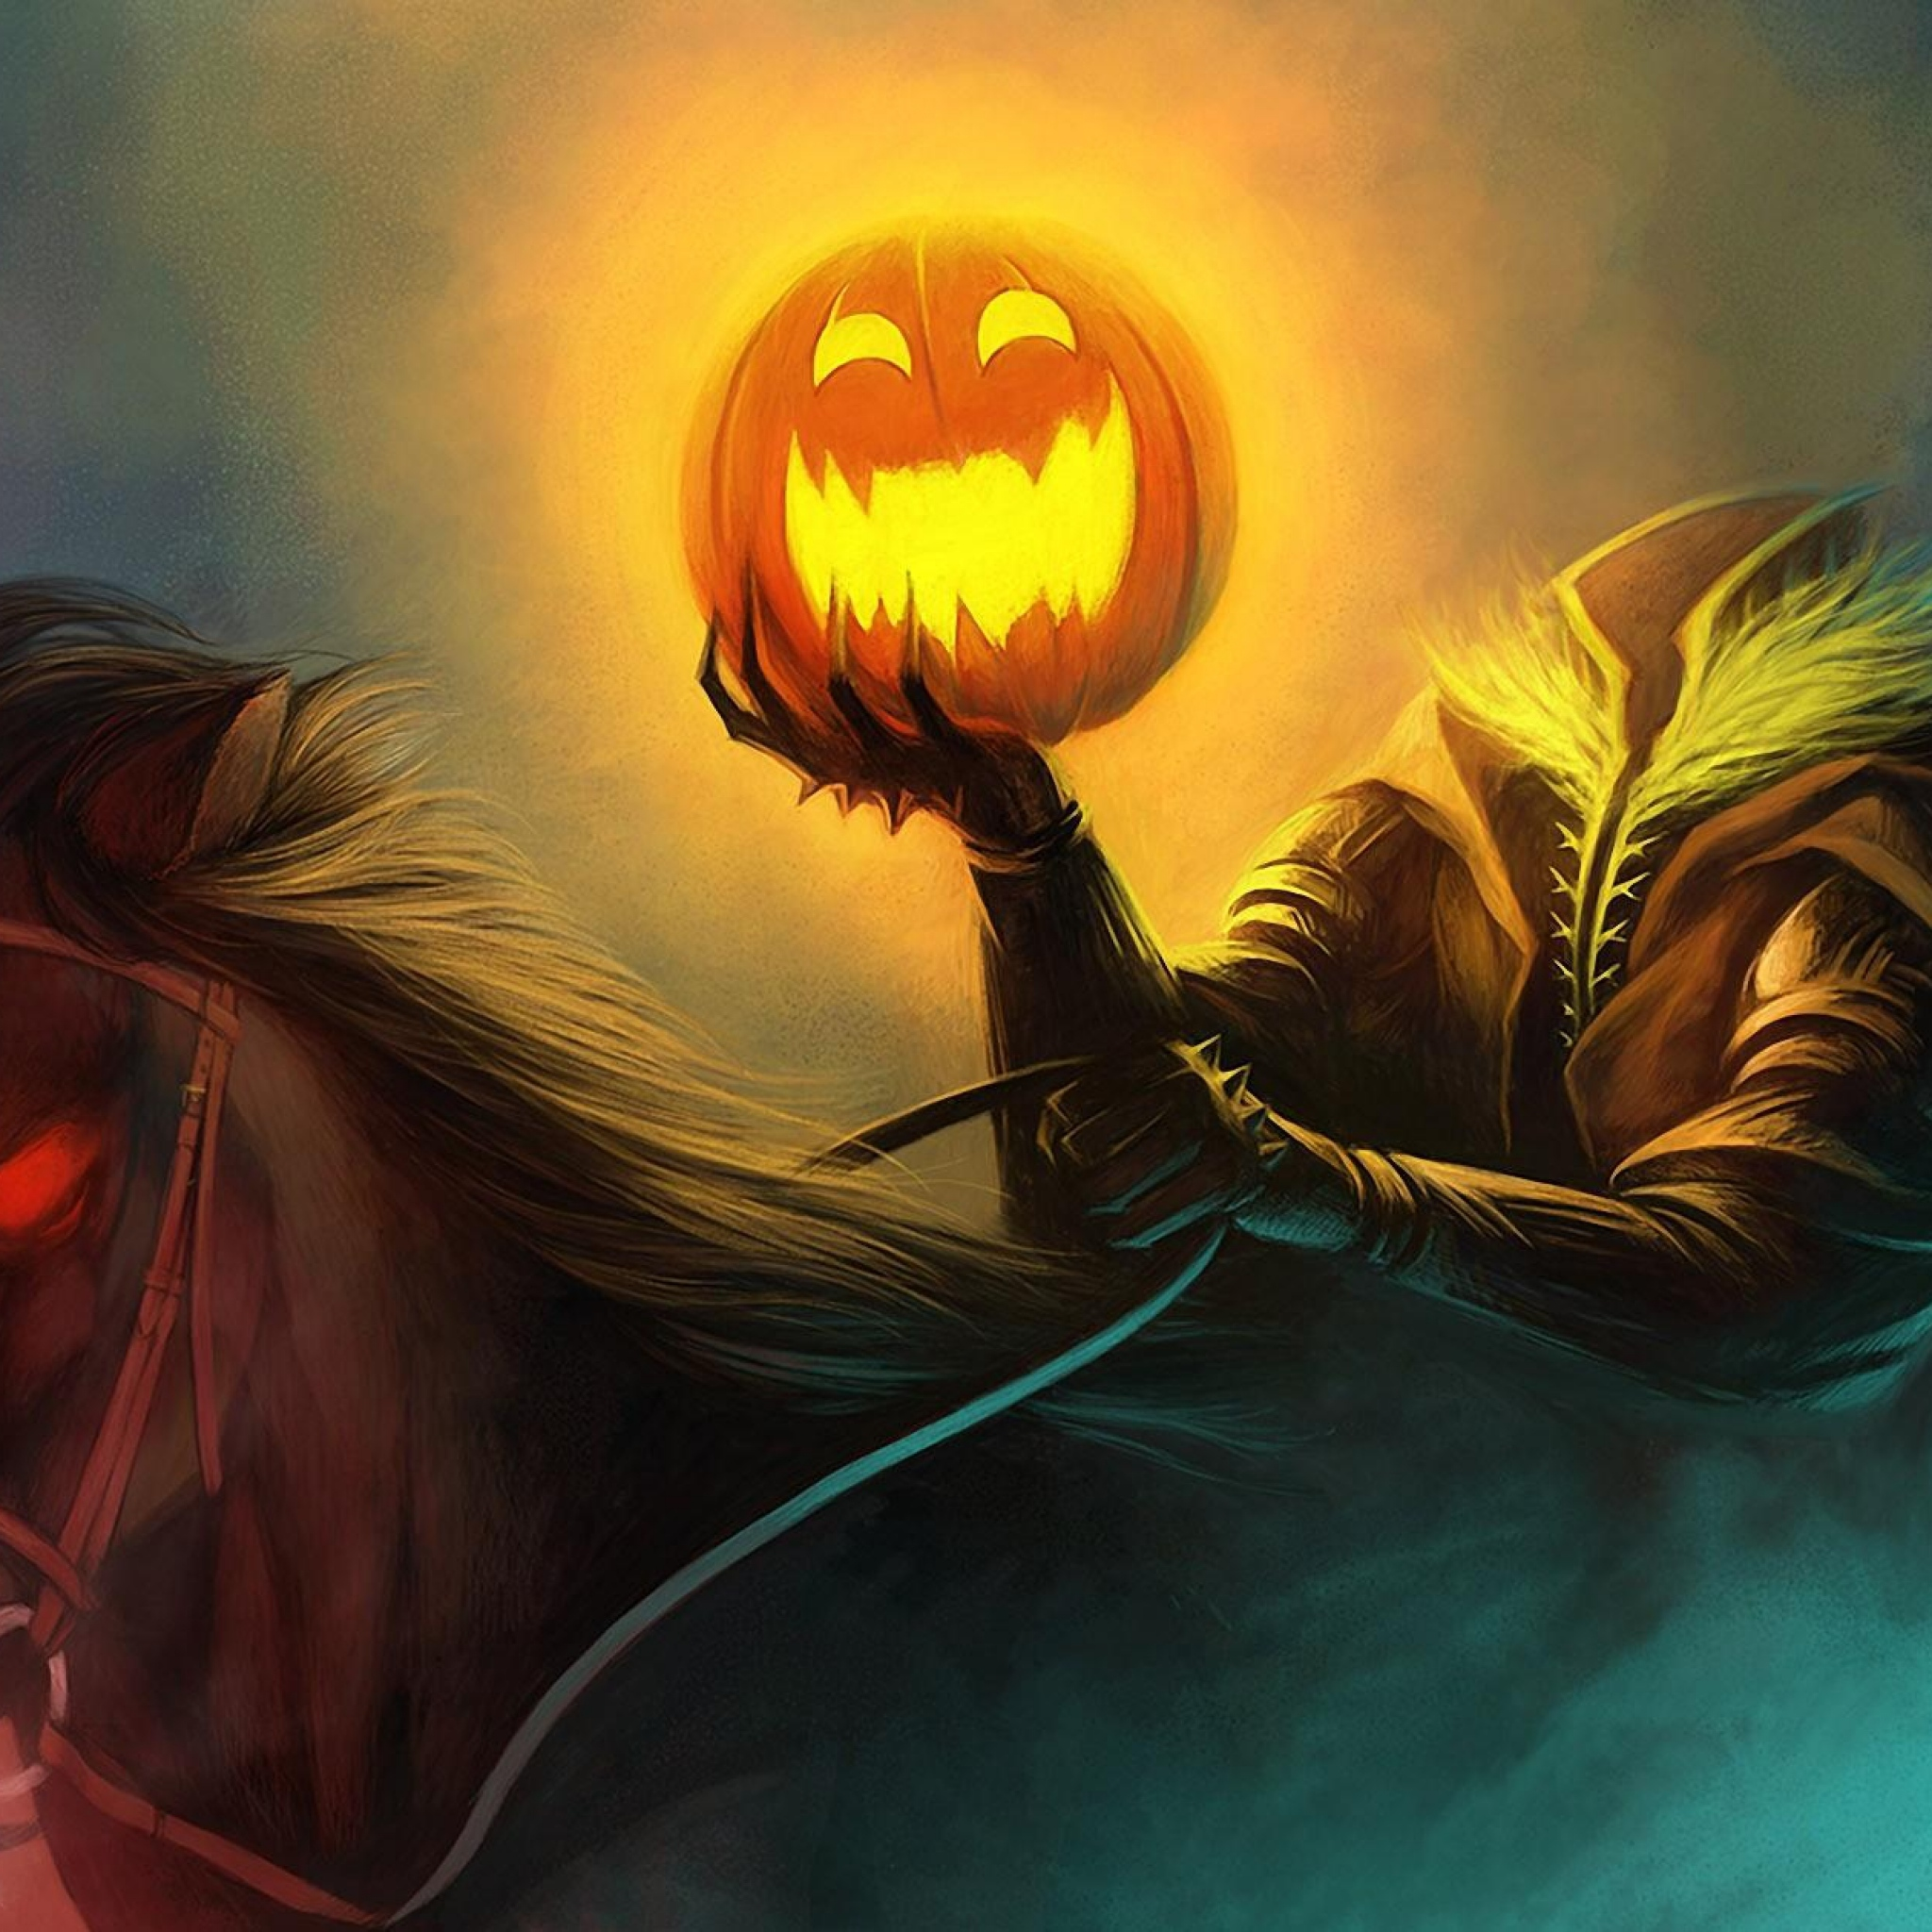 Headless Horseman With Pumpkin 2048x2048 Download Hd Wallpaper Wallpapertip